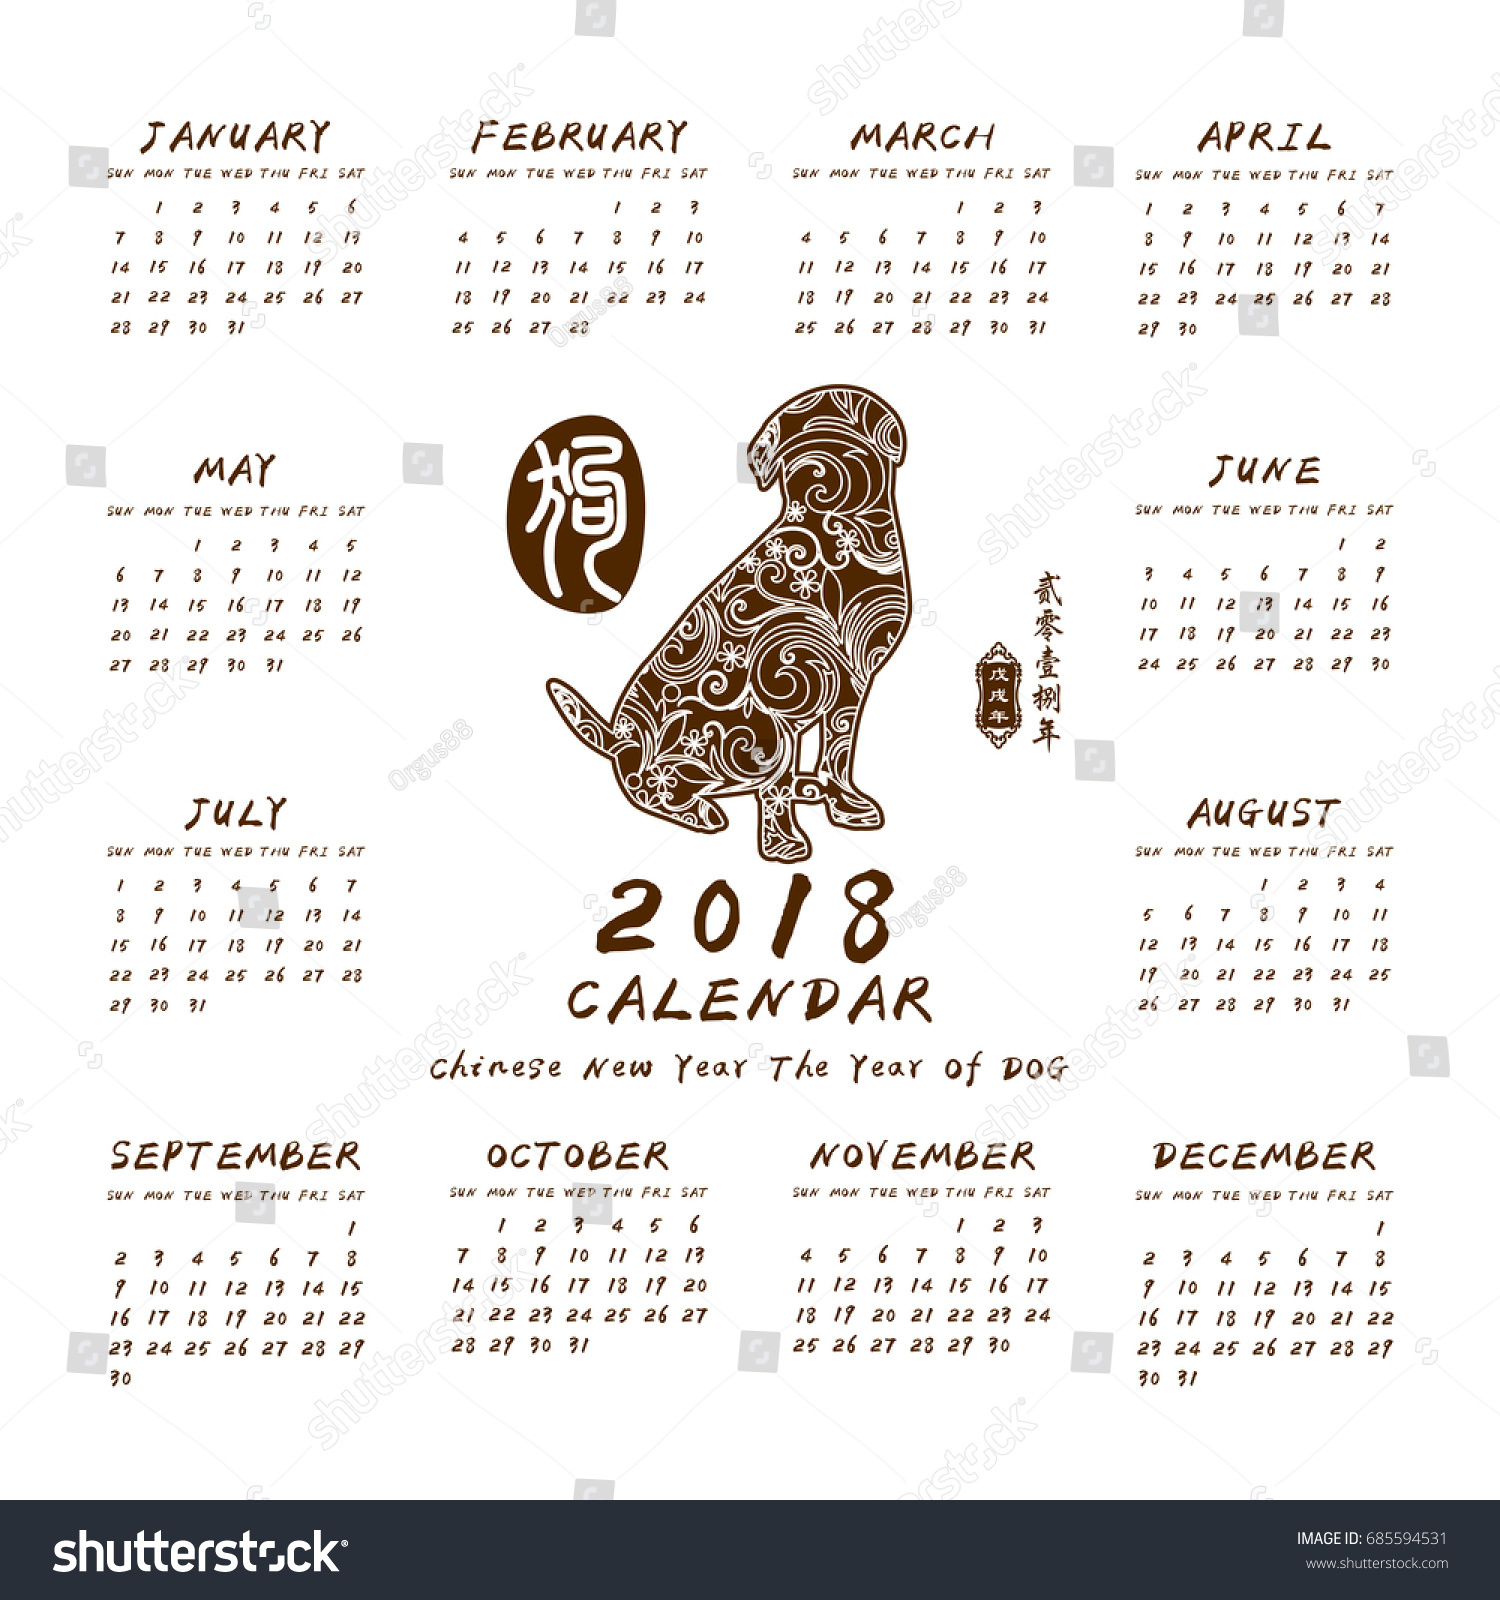 2018 calendar design week starts with sunday 2018 chinese new year of dog